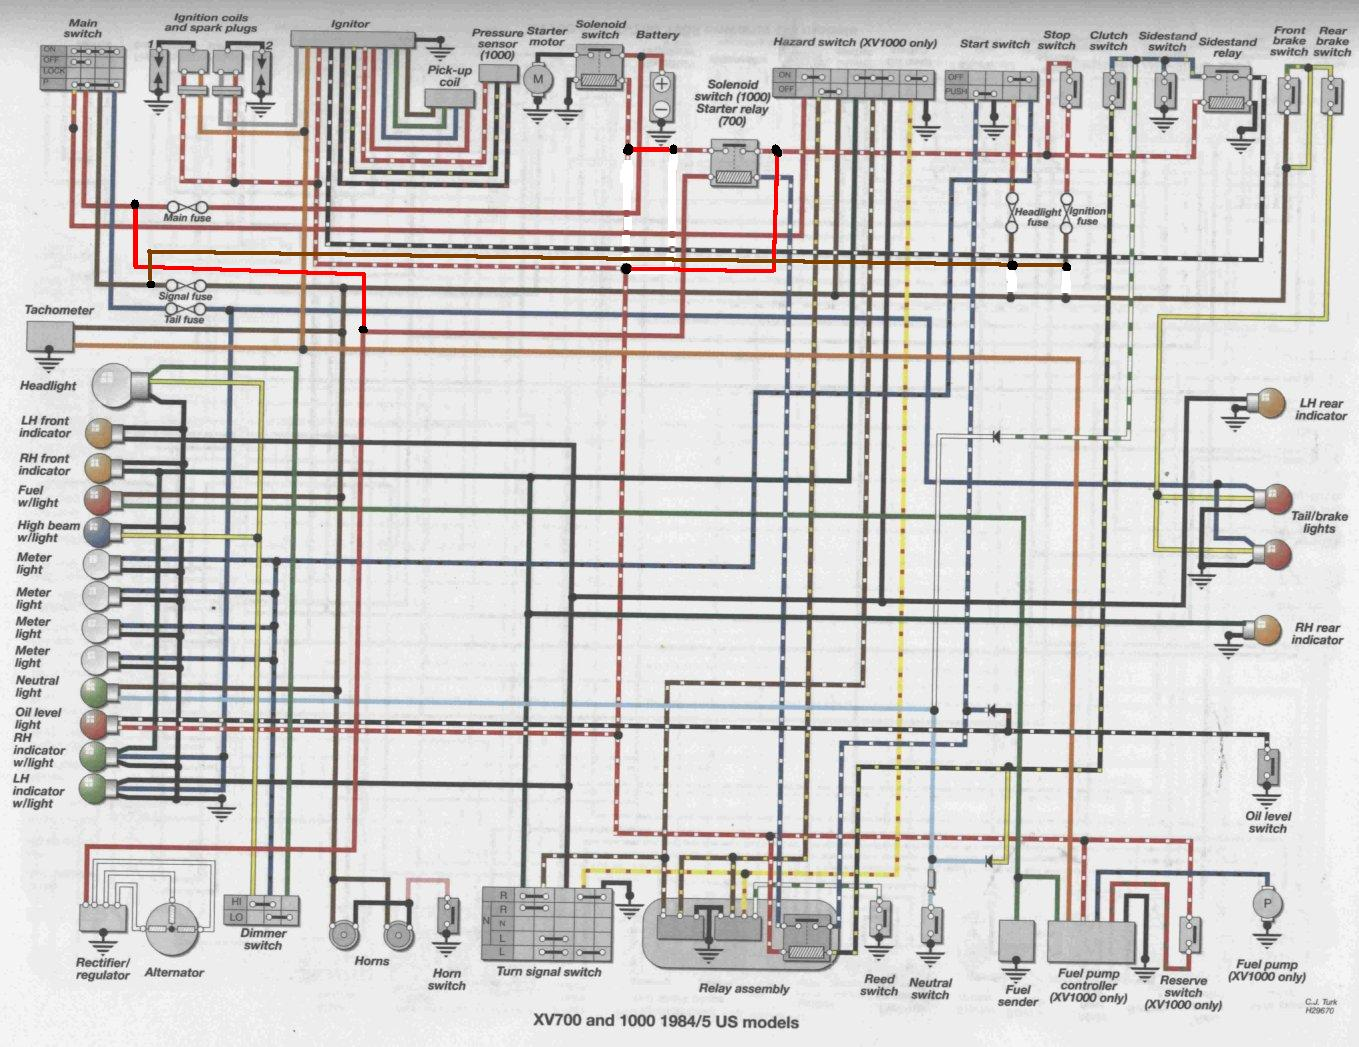 yamaha virago 920 engine diagram - wiring diagram data yamaha xv1100 virago wiring diagram  tennisabtlg-tus-erfenbach.de